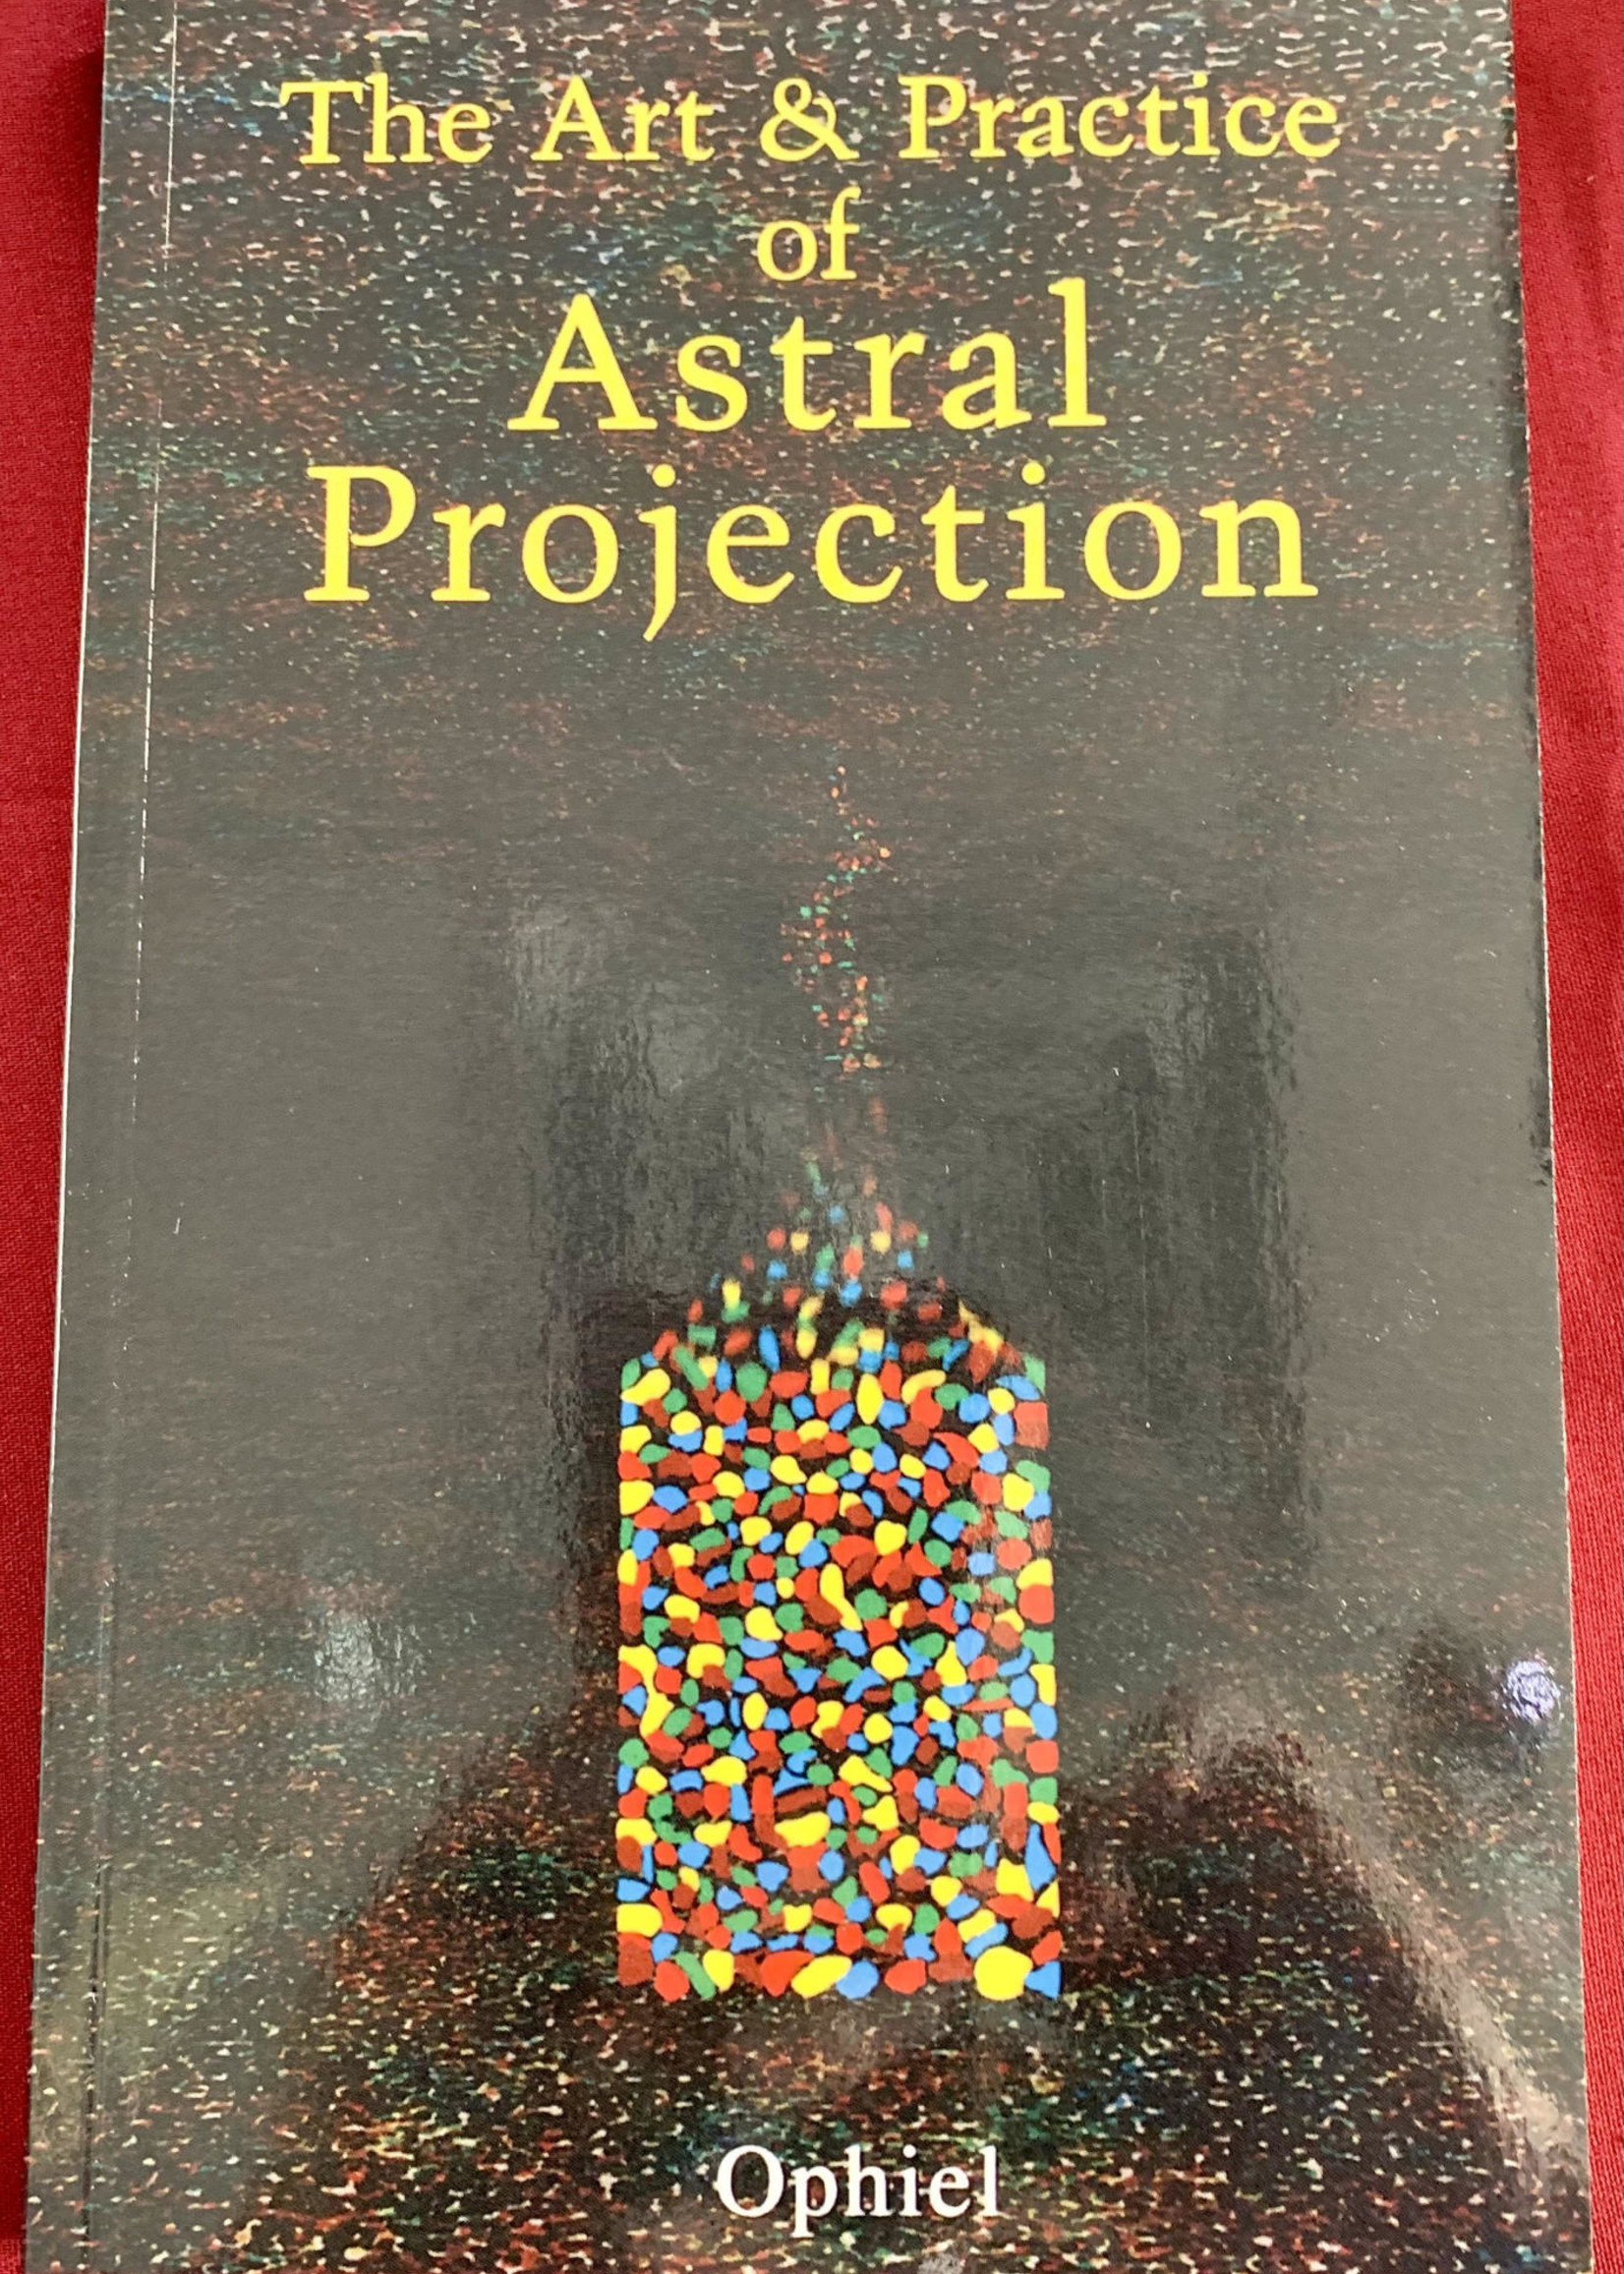 The Art and Practice of Astral Projection - Ophiel